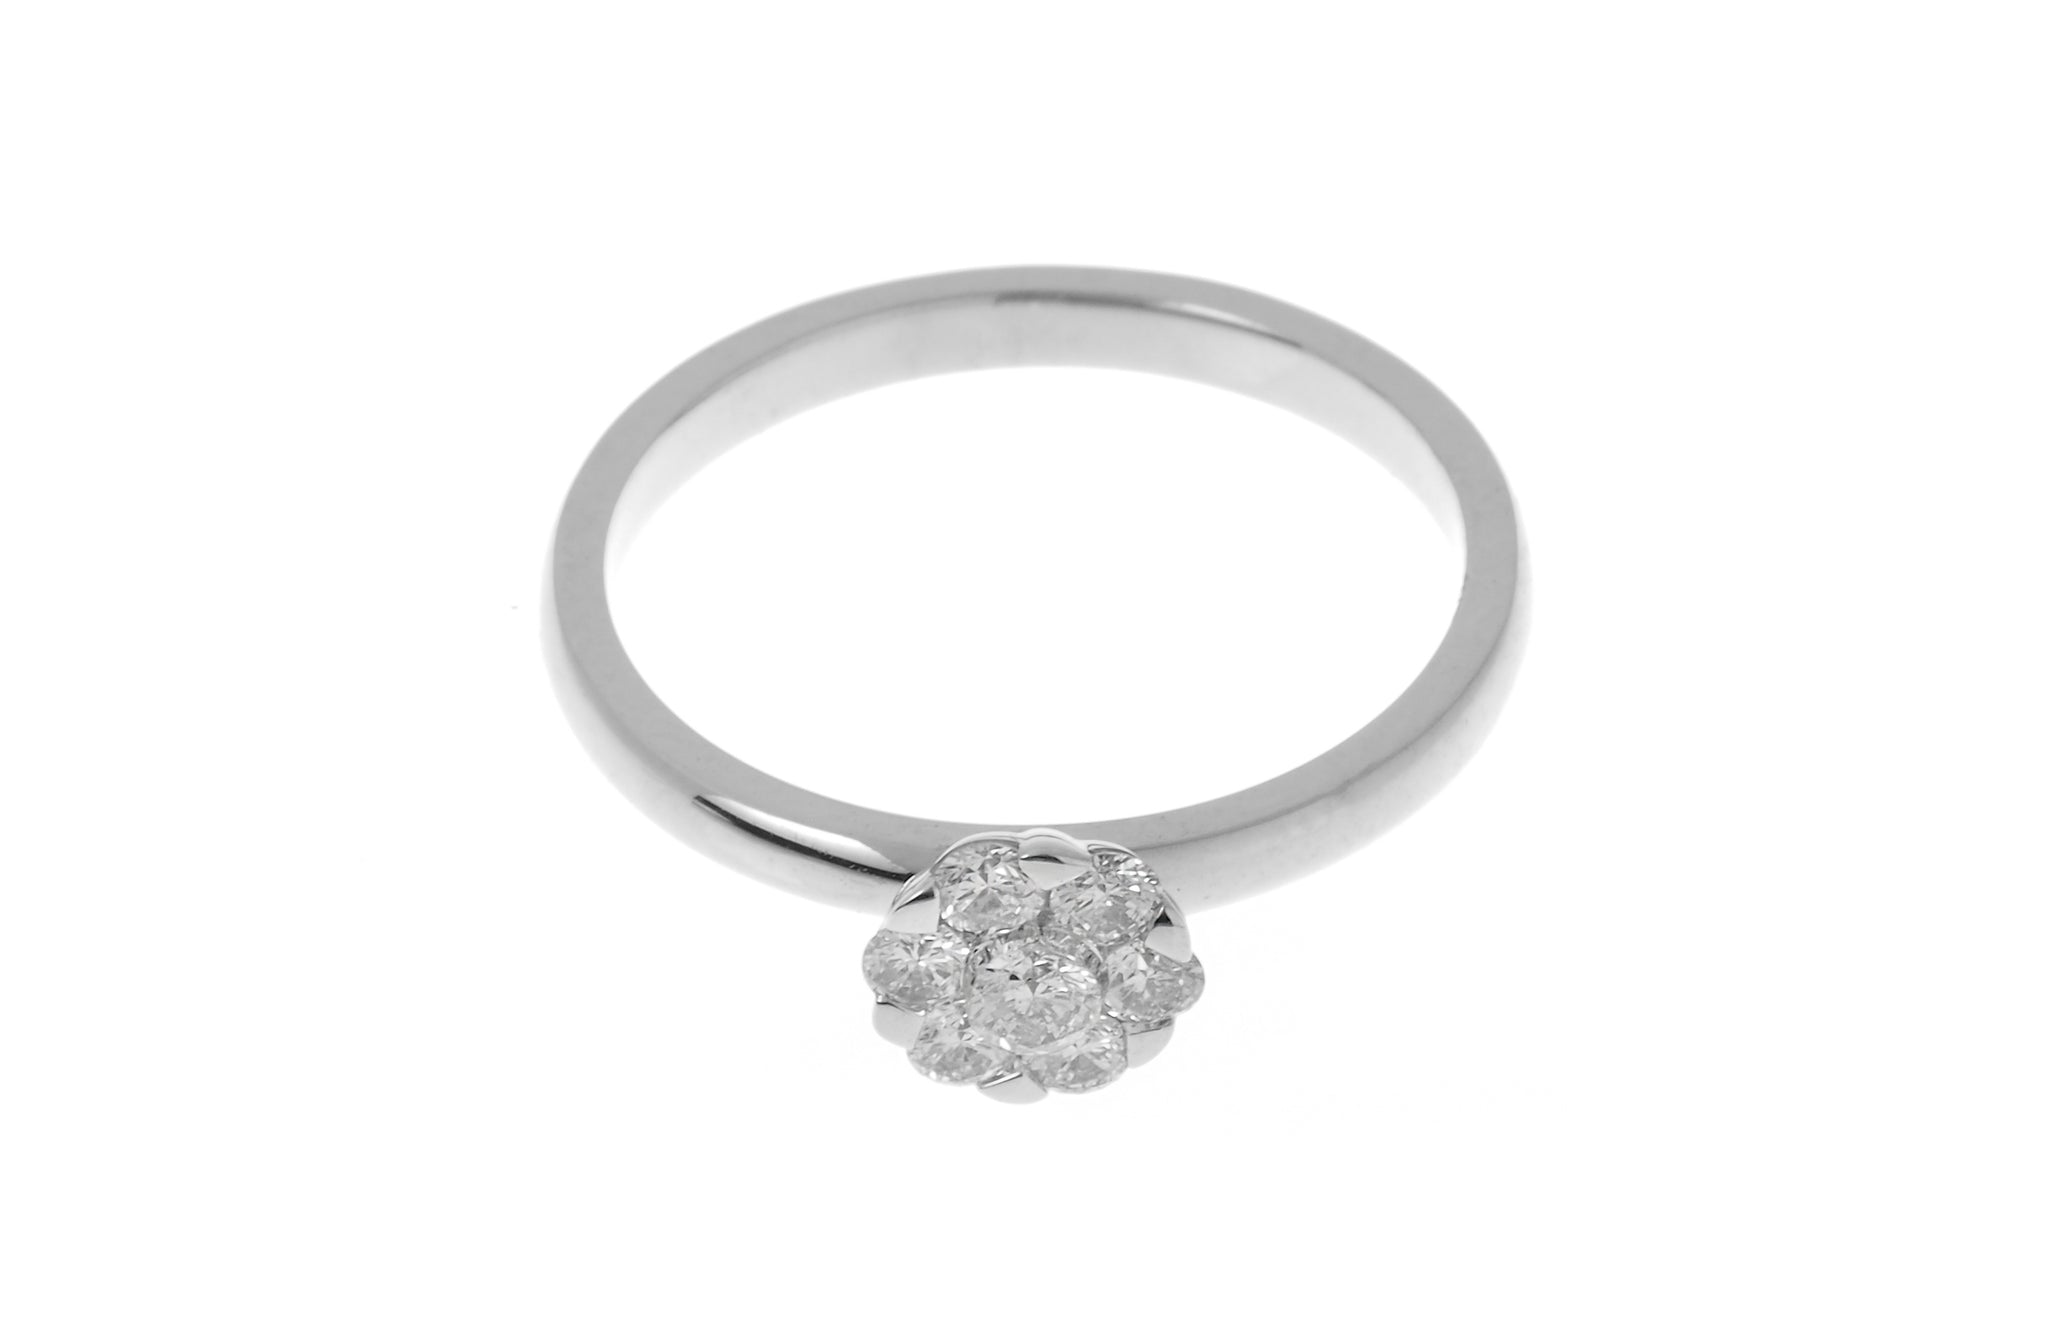 18ct White Gold Diamond Cluster Engagement Ring (LR-7221)